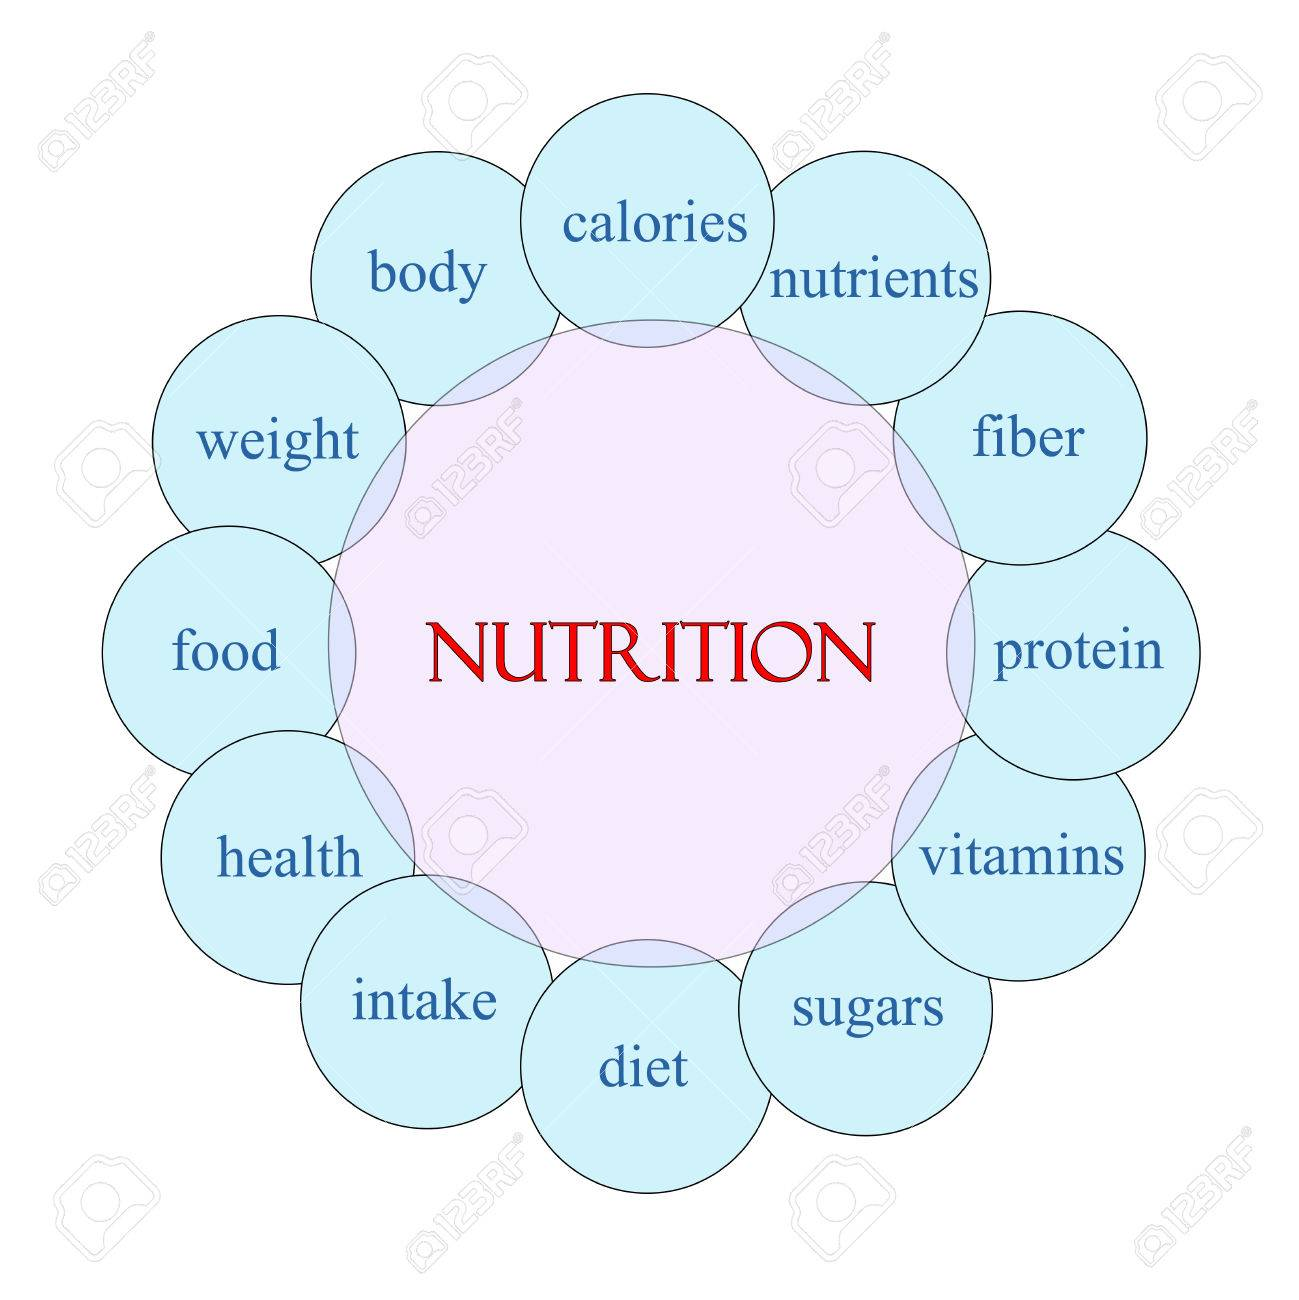 Nutrition Concept Circular Diagram In Pink And Blue With Great ...